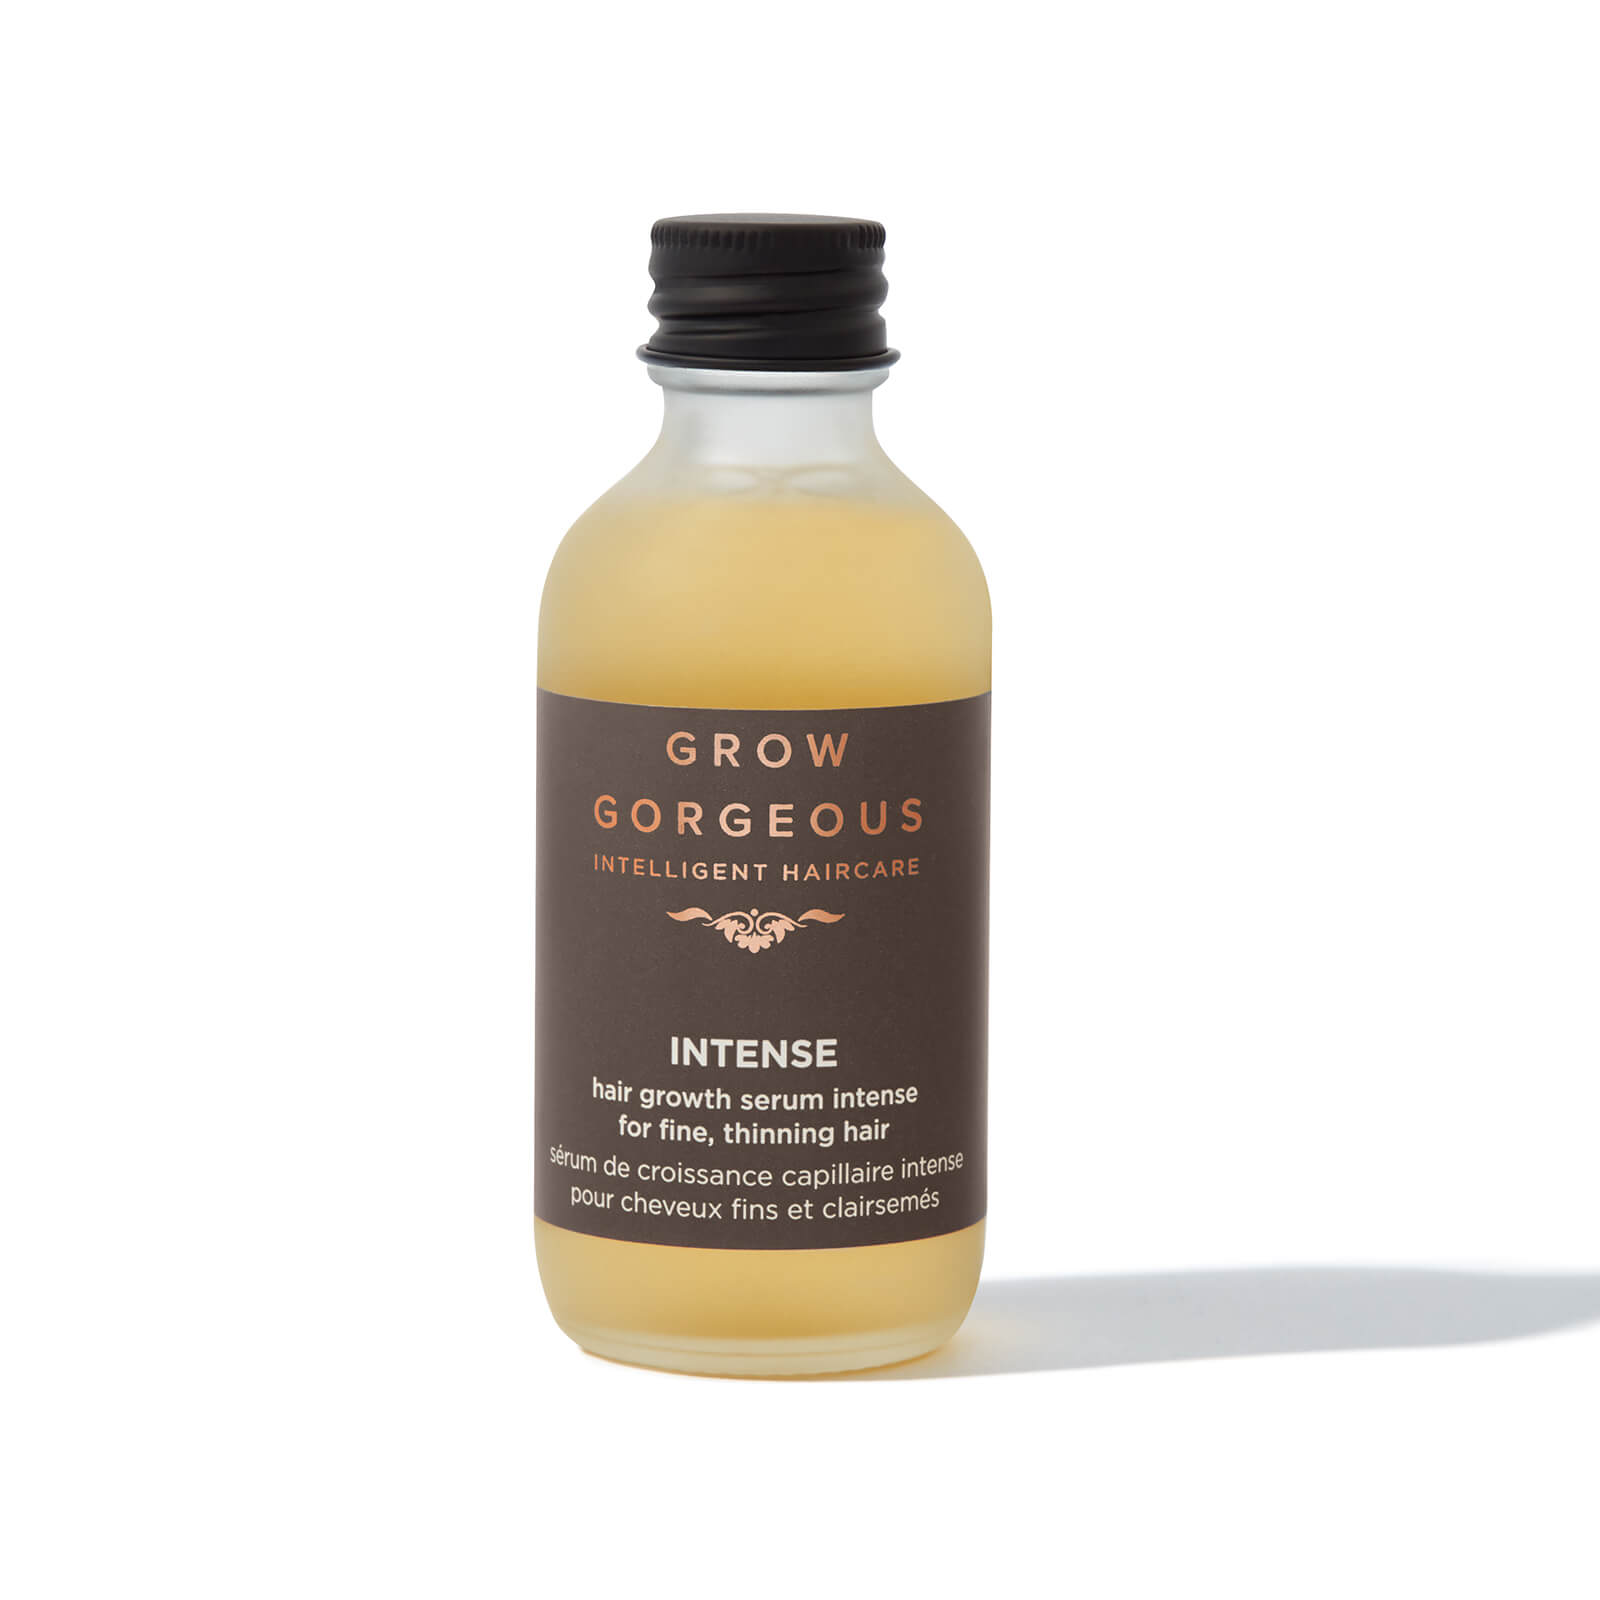 Grow Gorgeous Growth Serum Intense 60ml